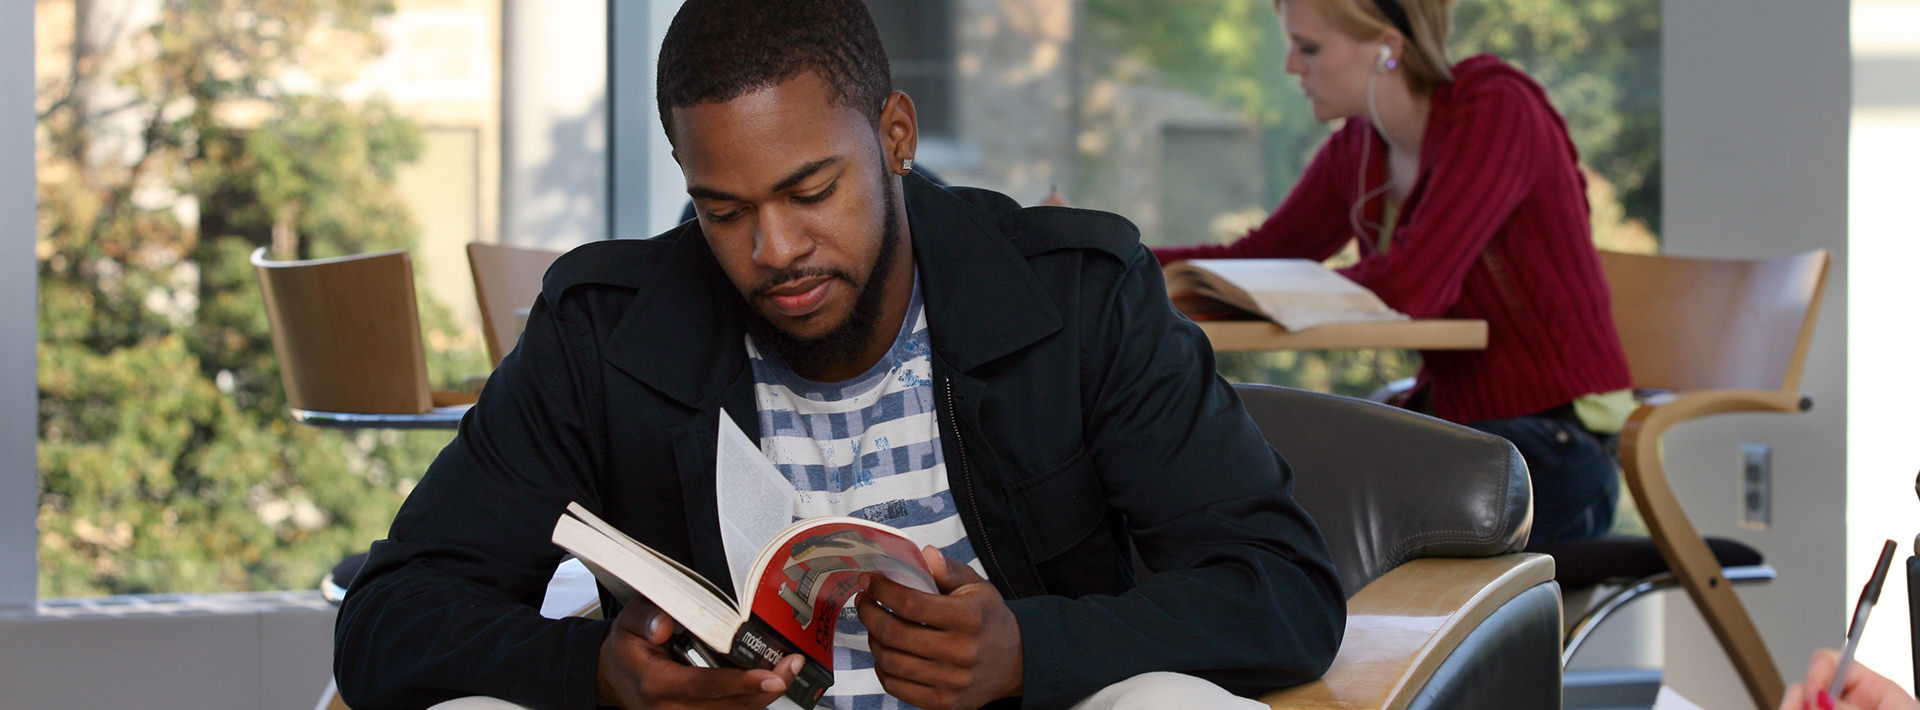 A male student flipping through a book.